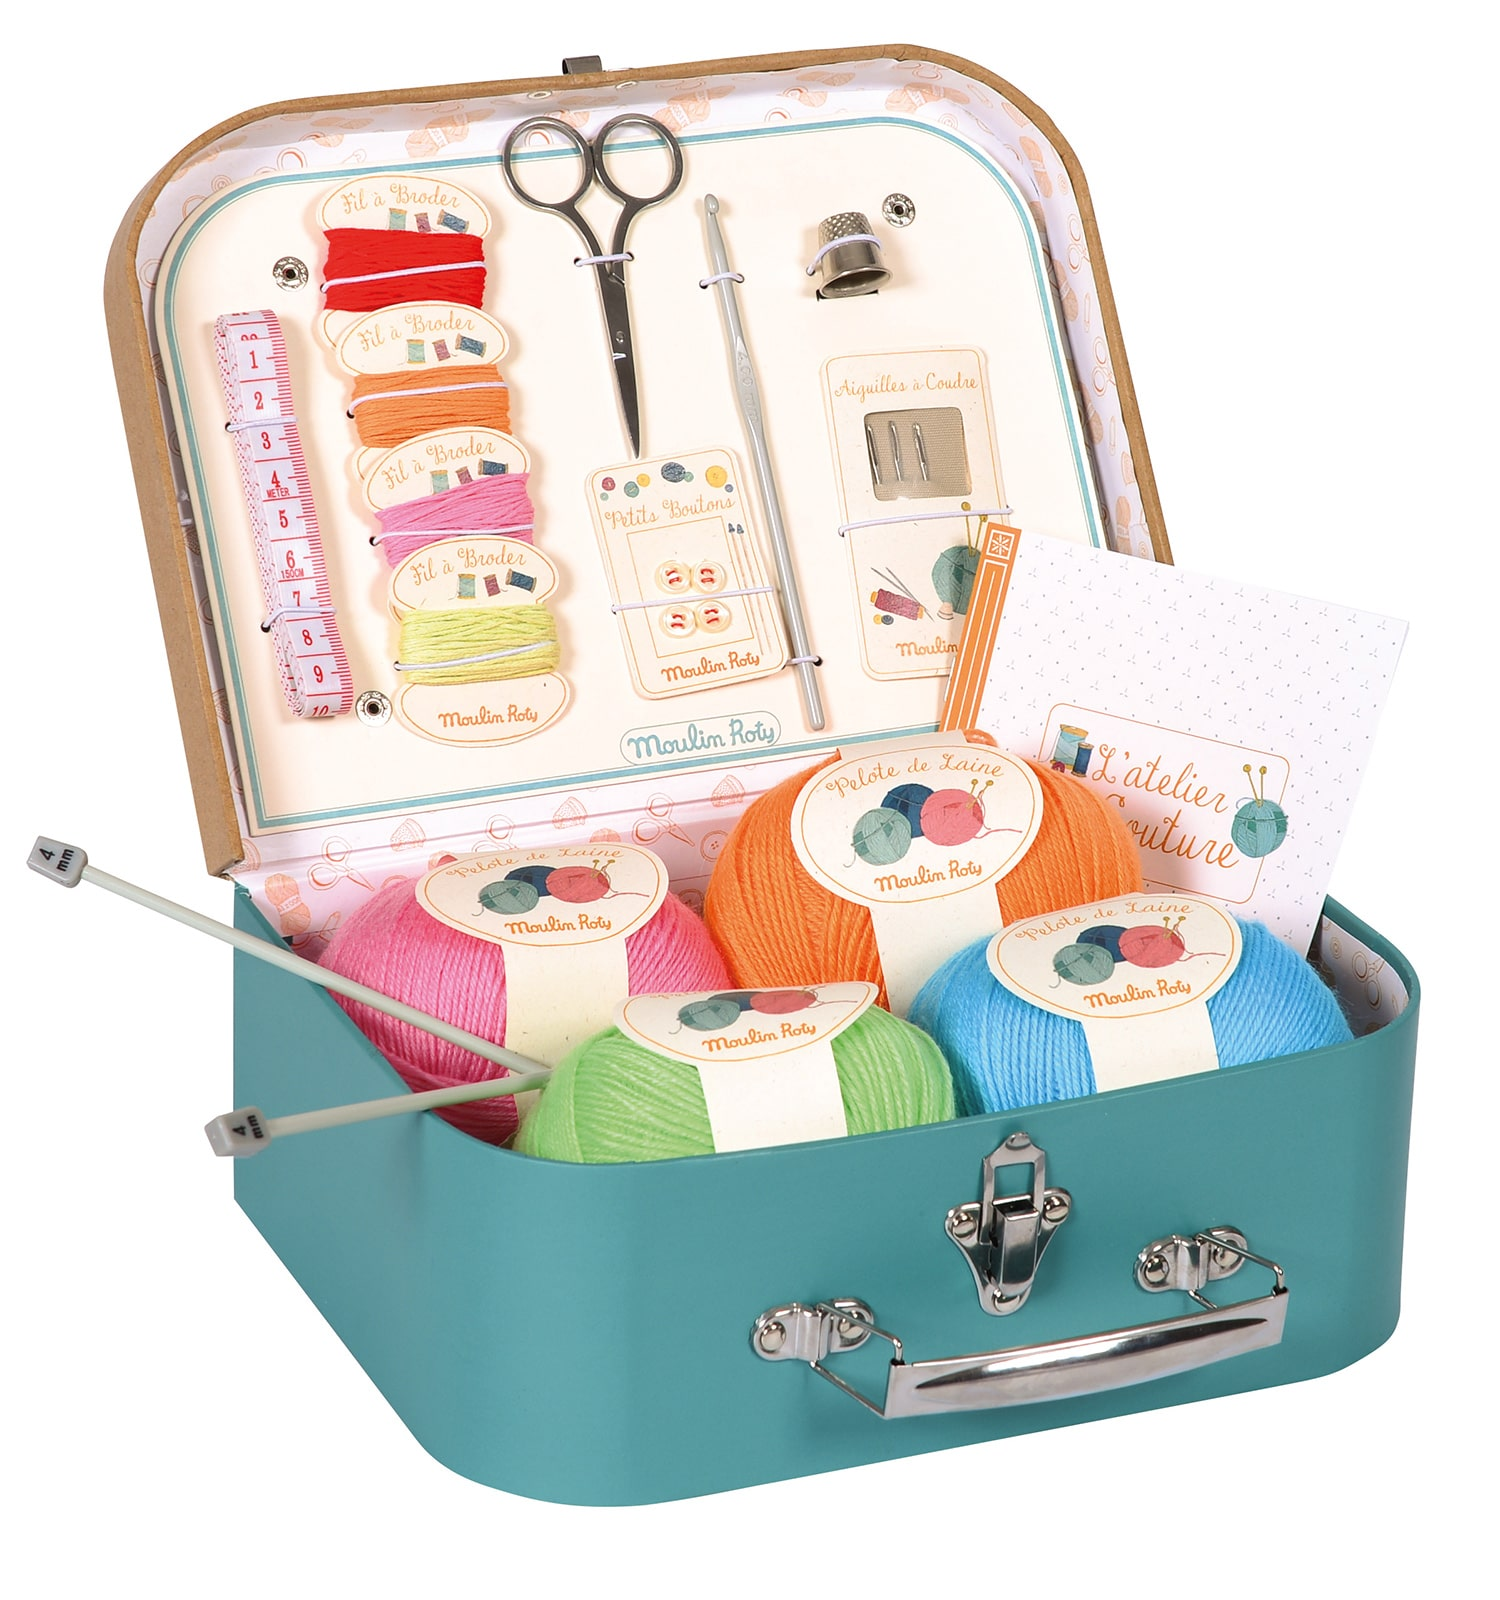 Suitcase of haberdashery equipment, the lid is open to display contents of wool balls, skeins of cotton, scissors, buttons and thimble - Moulin Roty 710 404